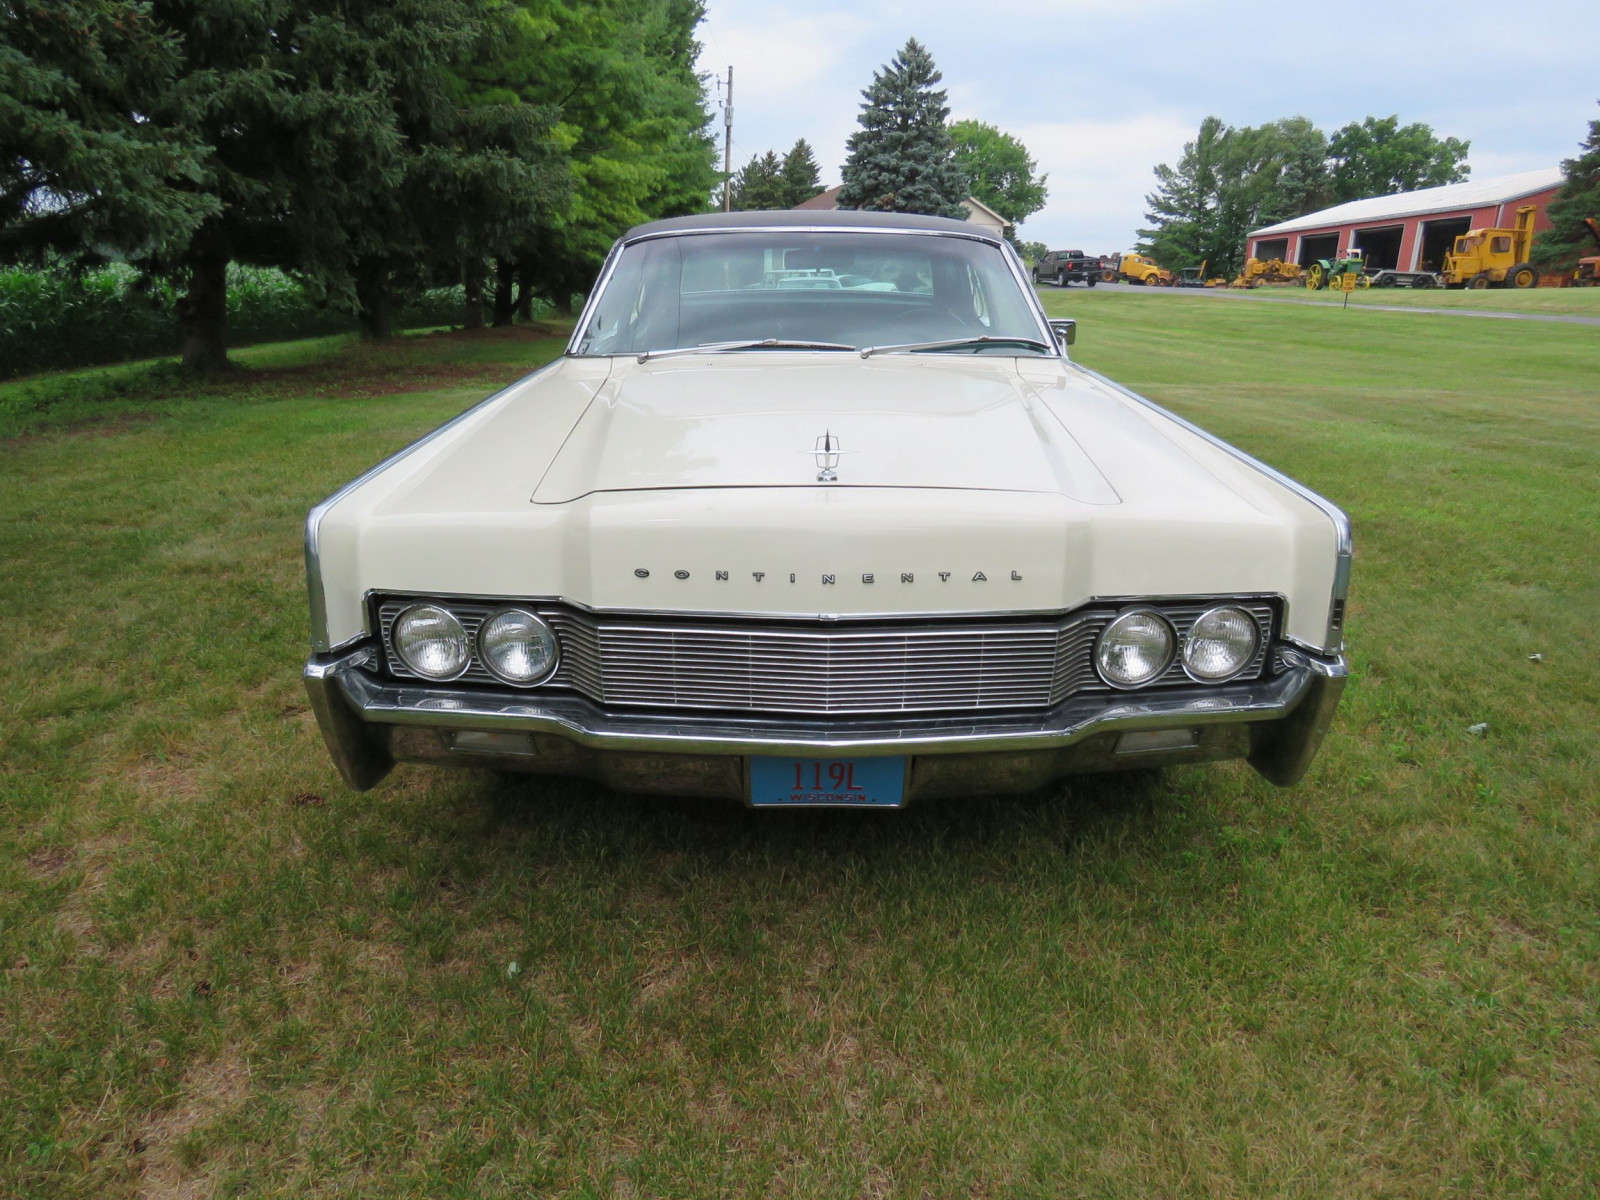 1967 Lincoln Continental 4dr HT Suicide Sedan - Image 2